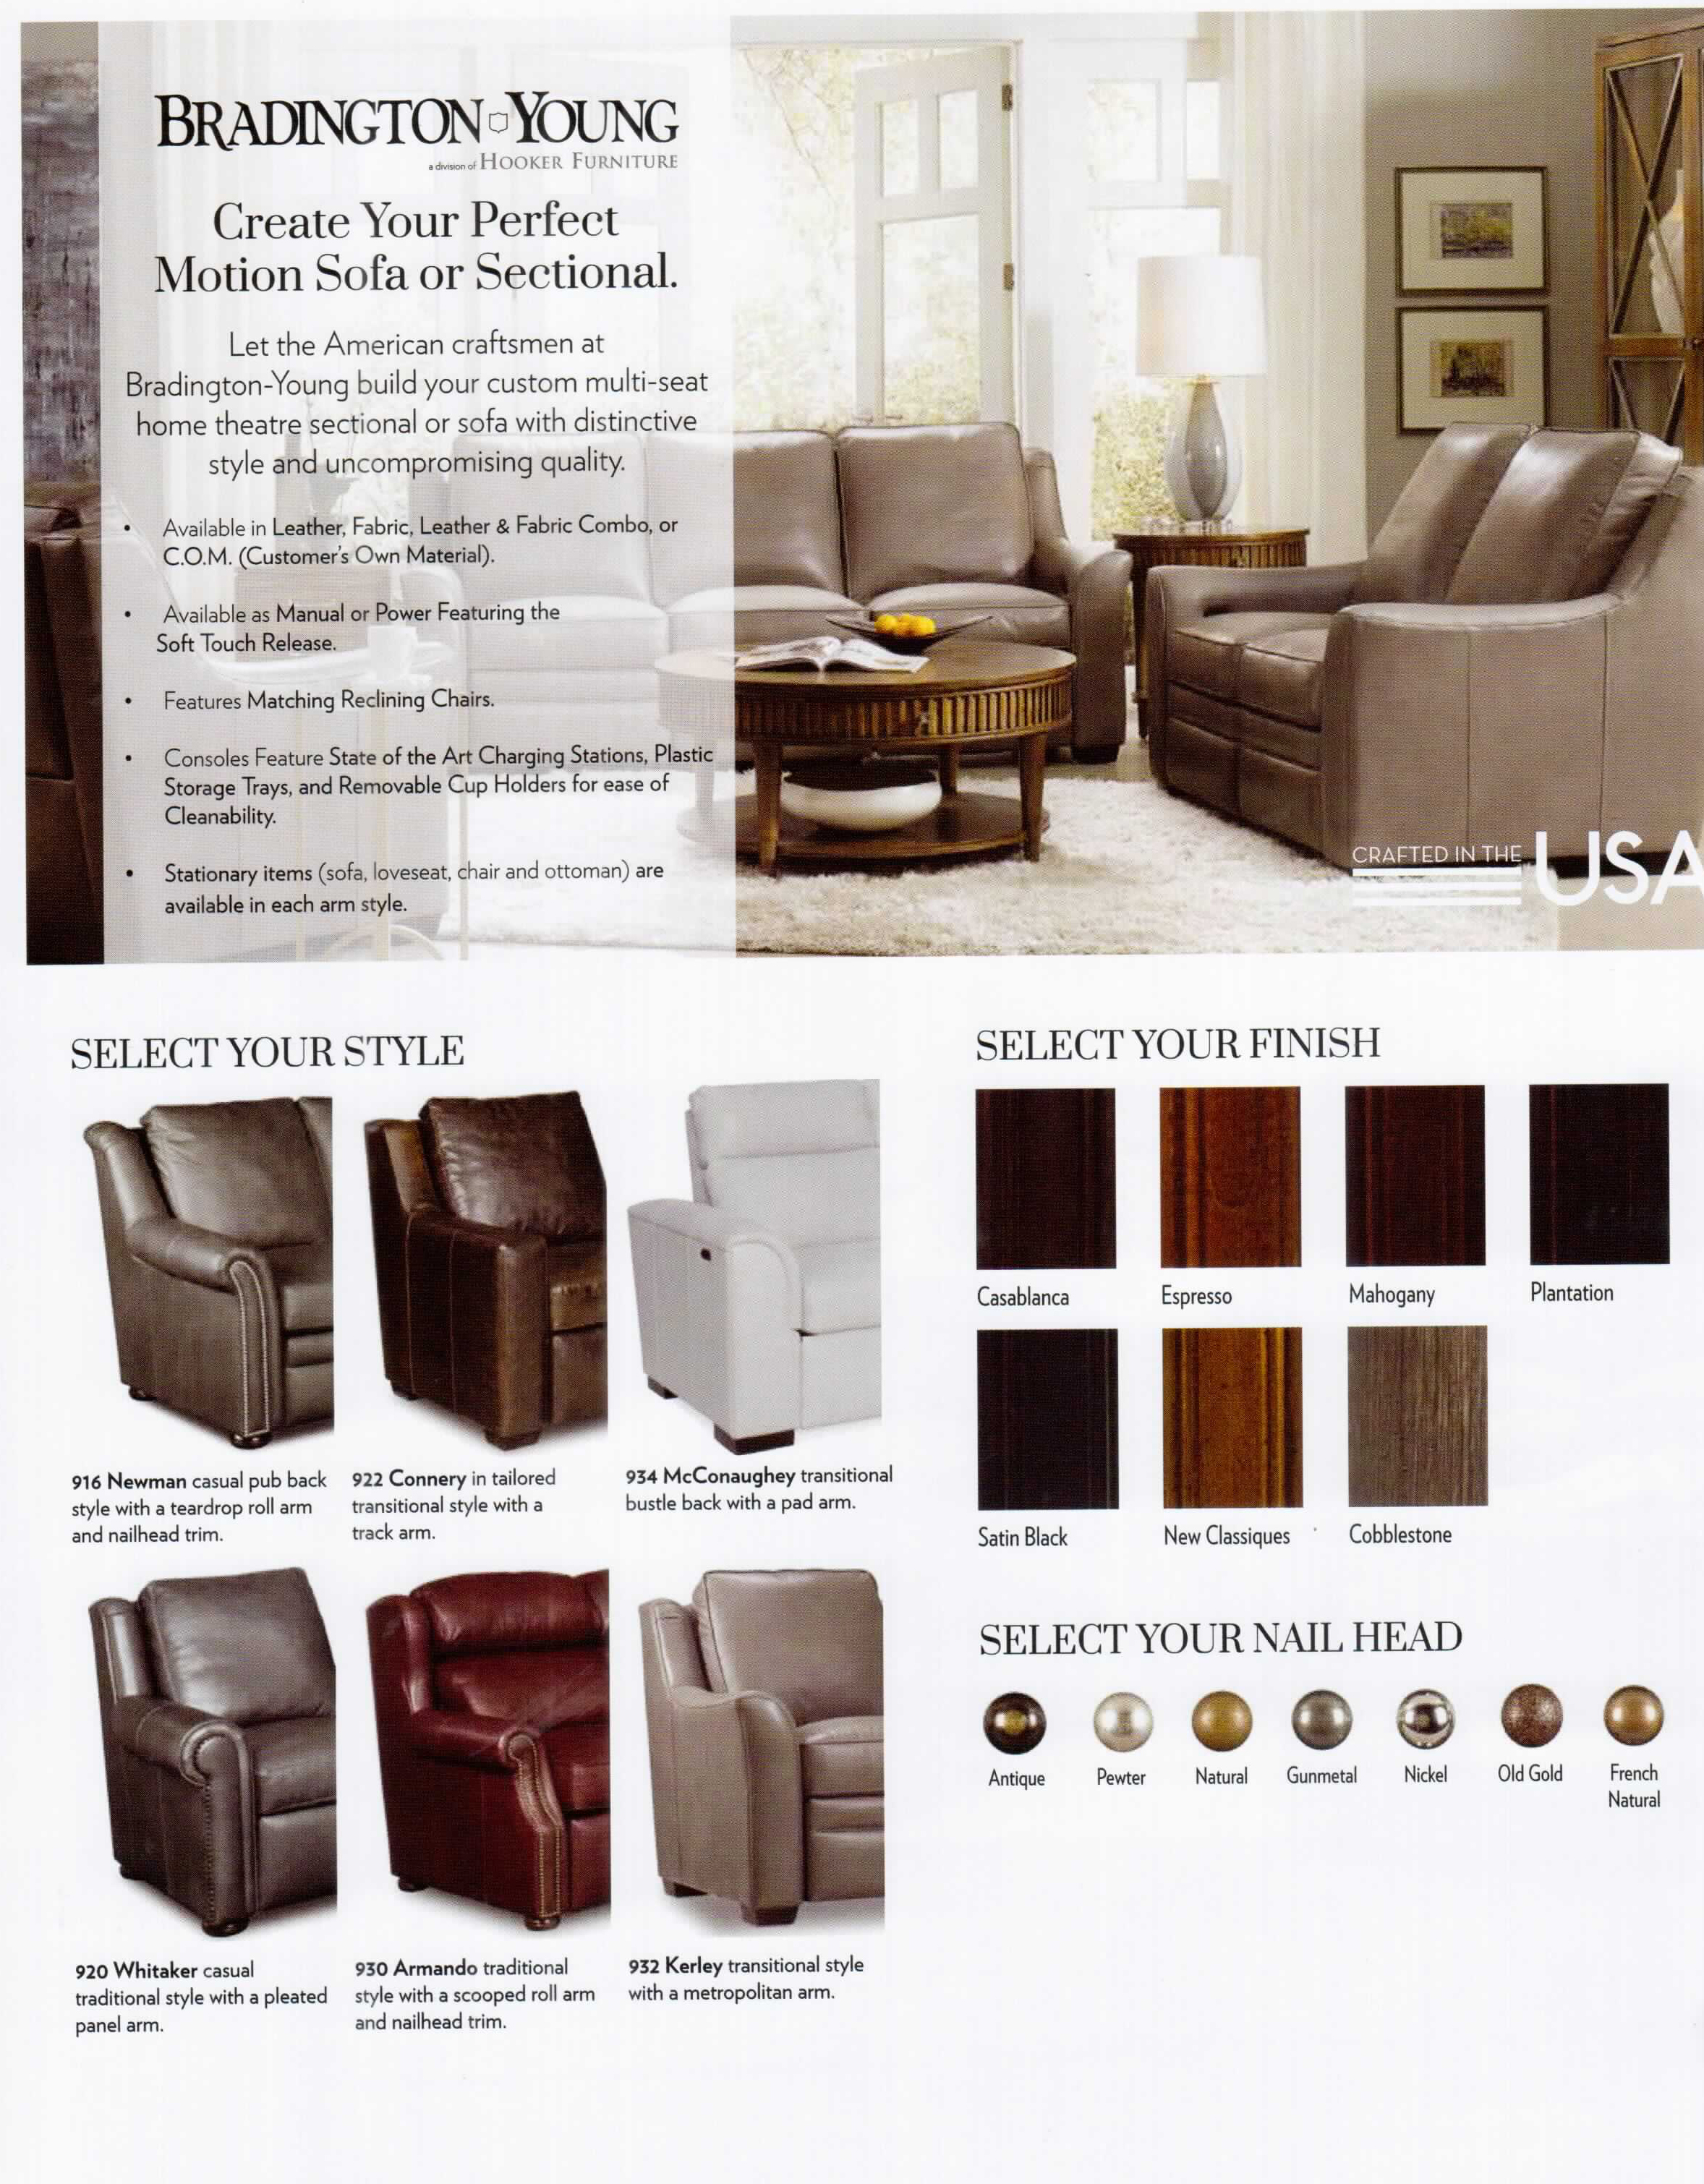 Bradington-Young 900 series luxury reclining furniture